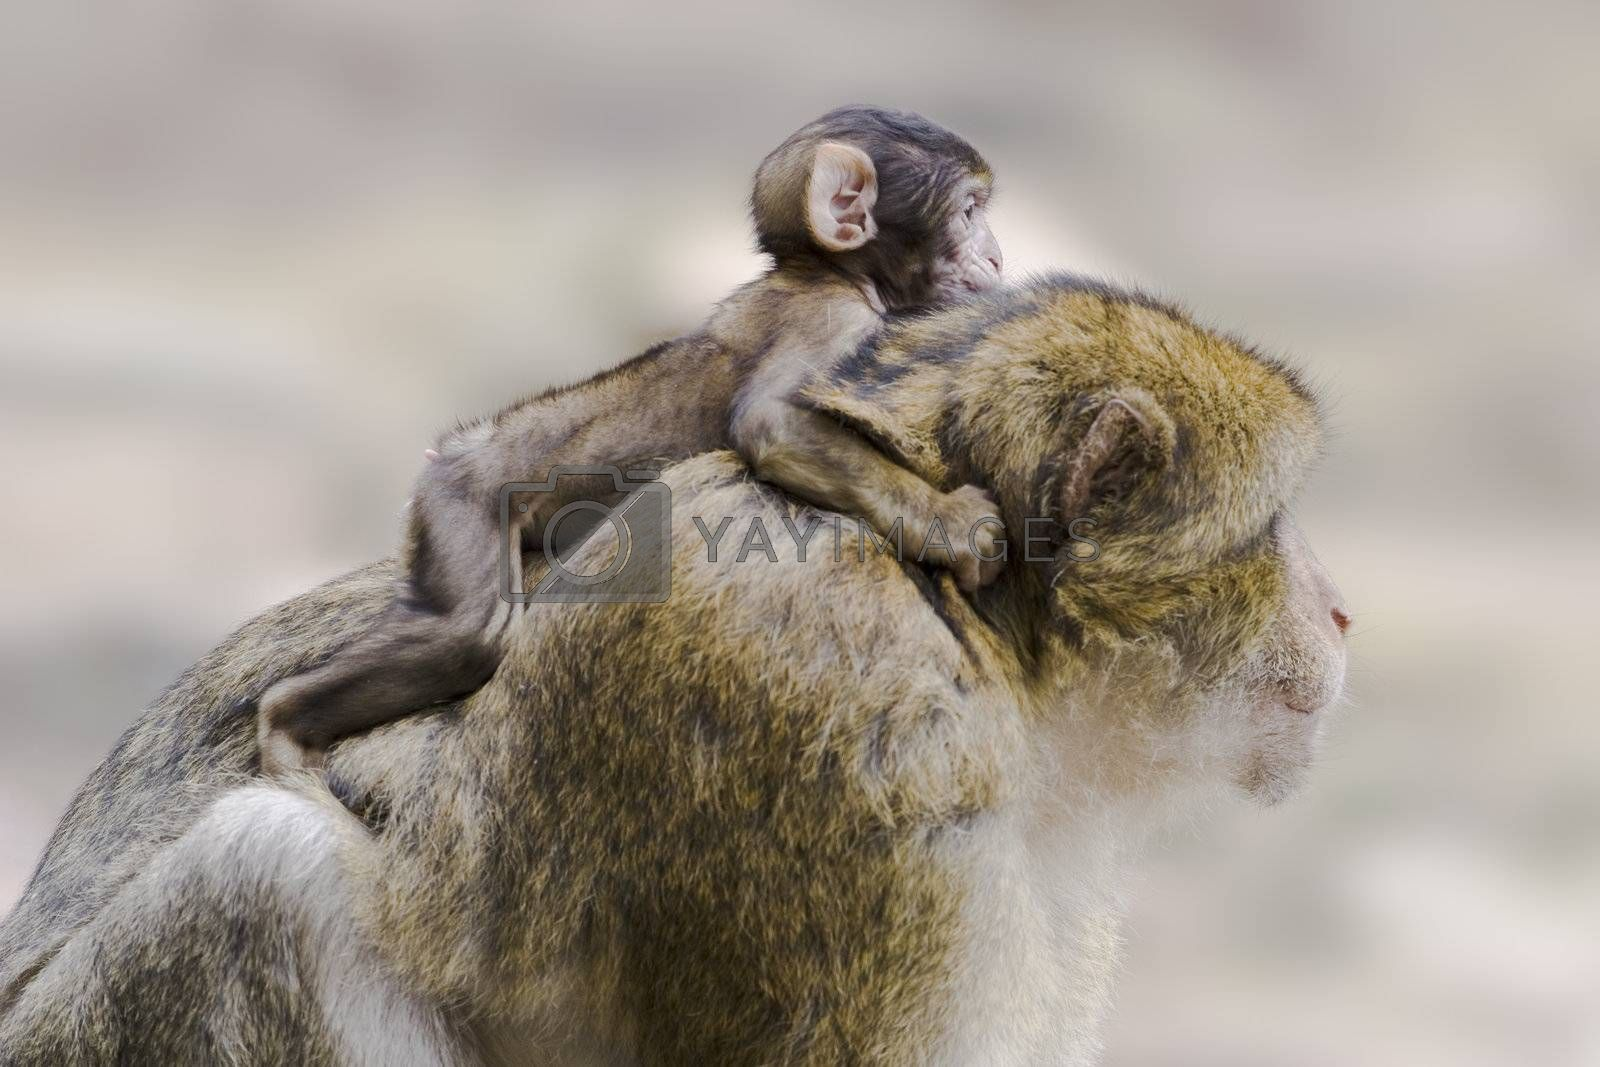 Barbary ape with young one on its back